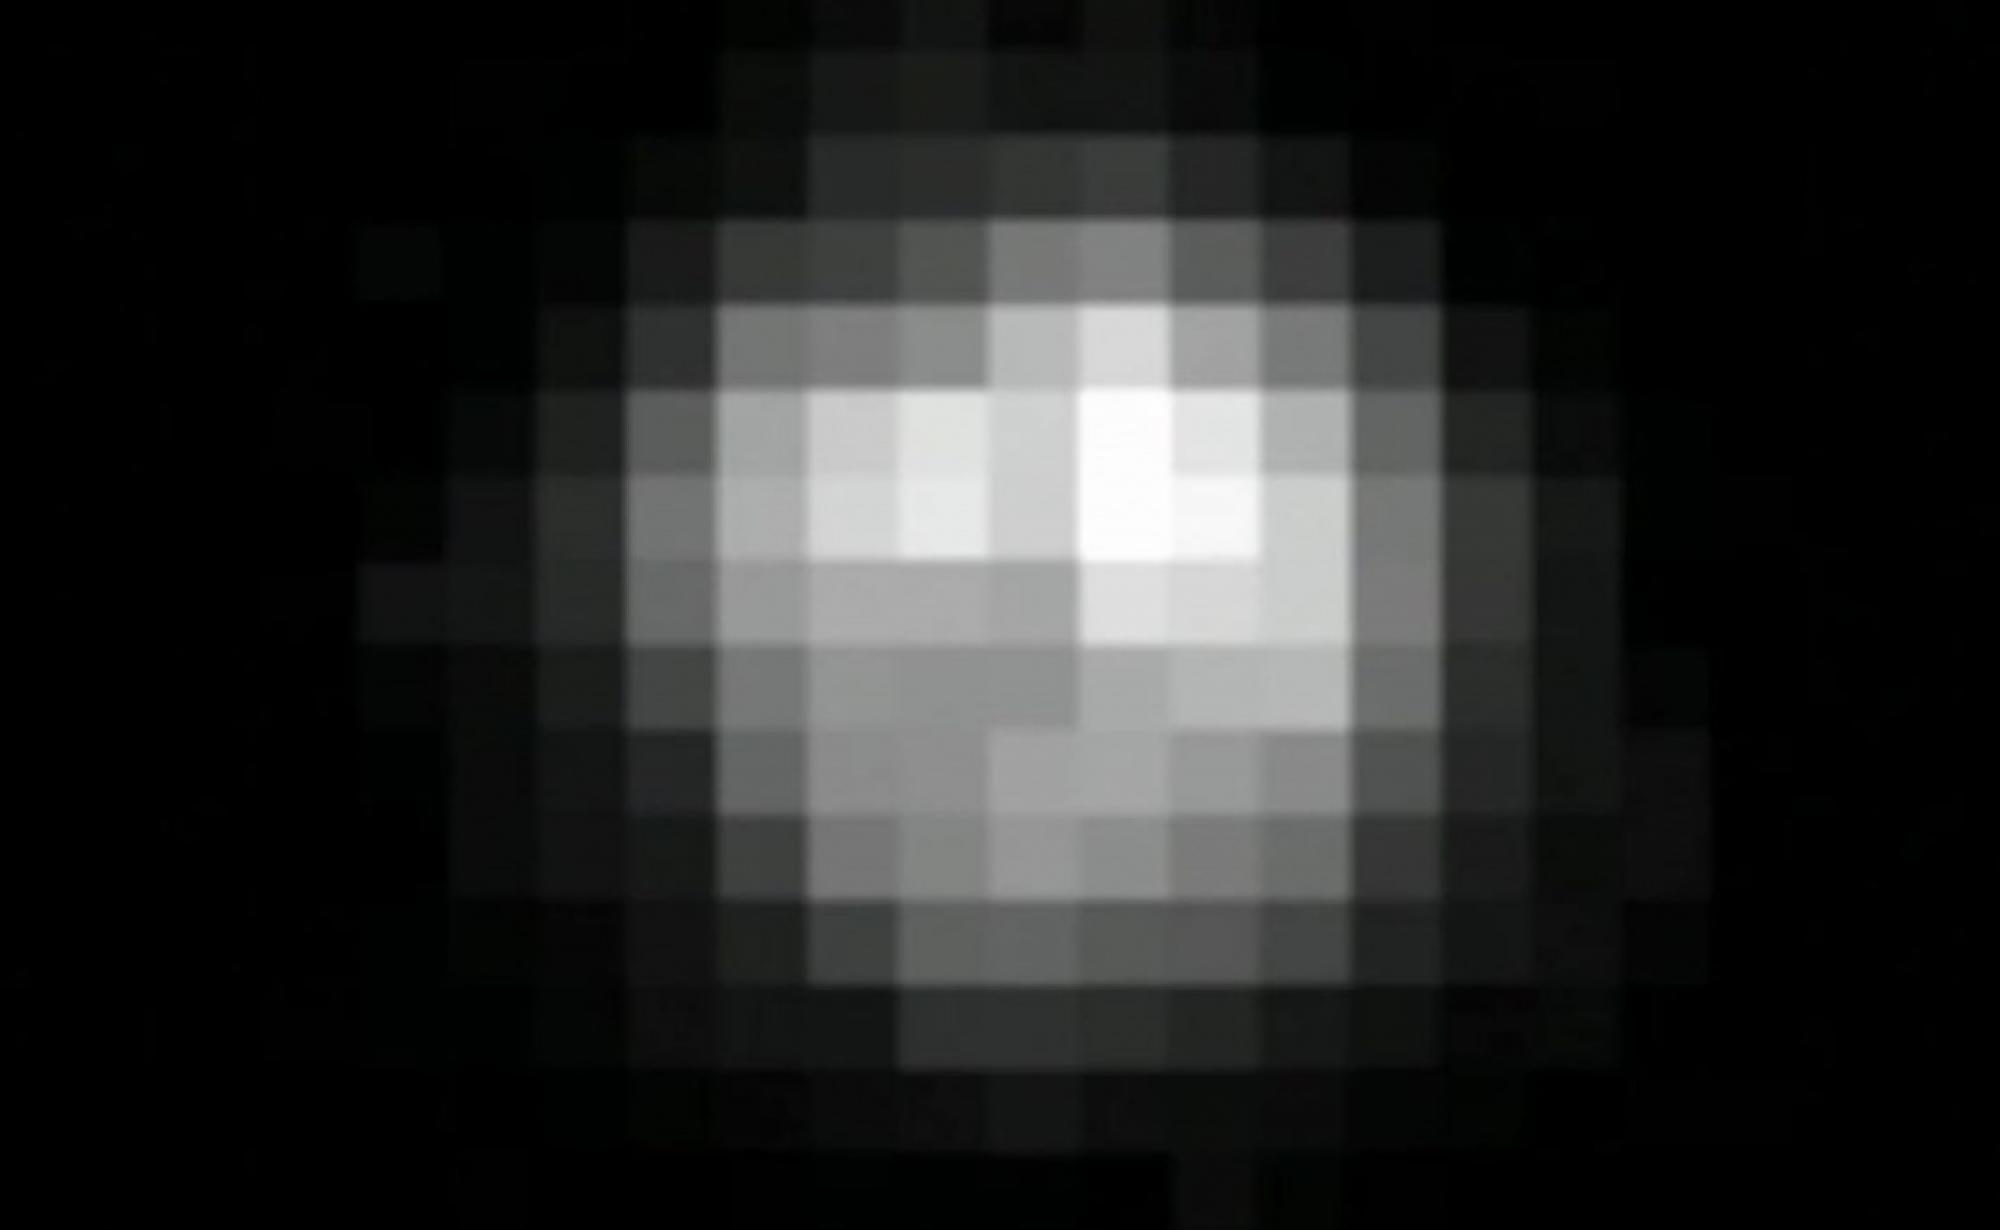 This pixelated, blurry image, taken with the Hubble Space Telescope, is the best view of Pluto that was available before the New Horizons mission.